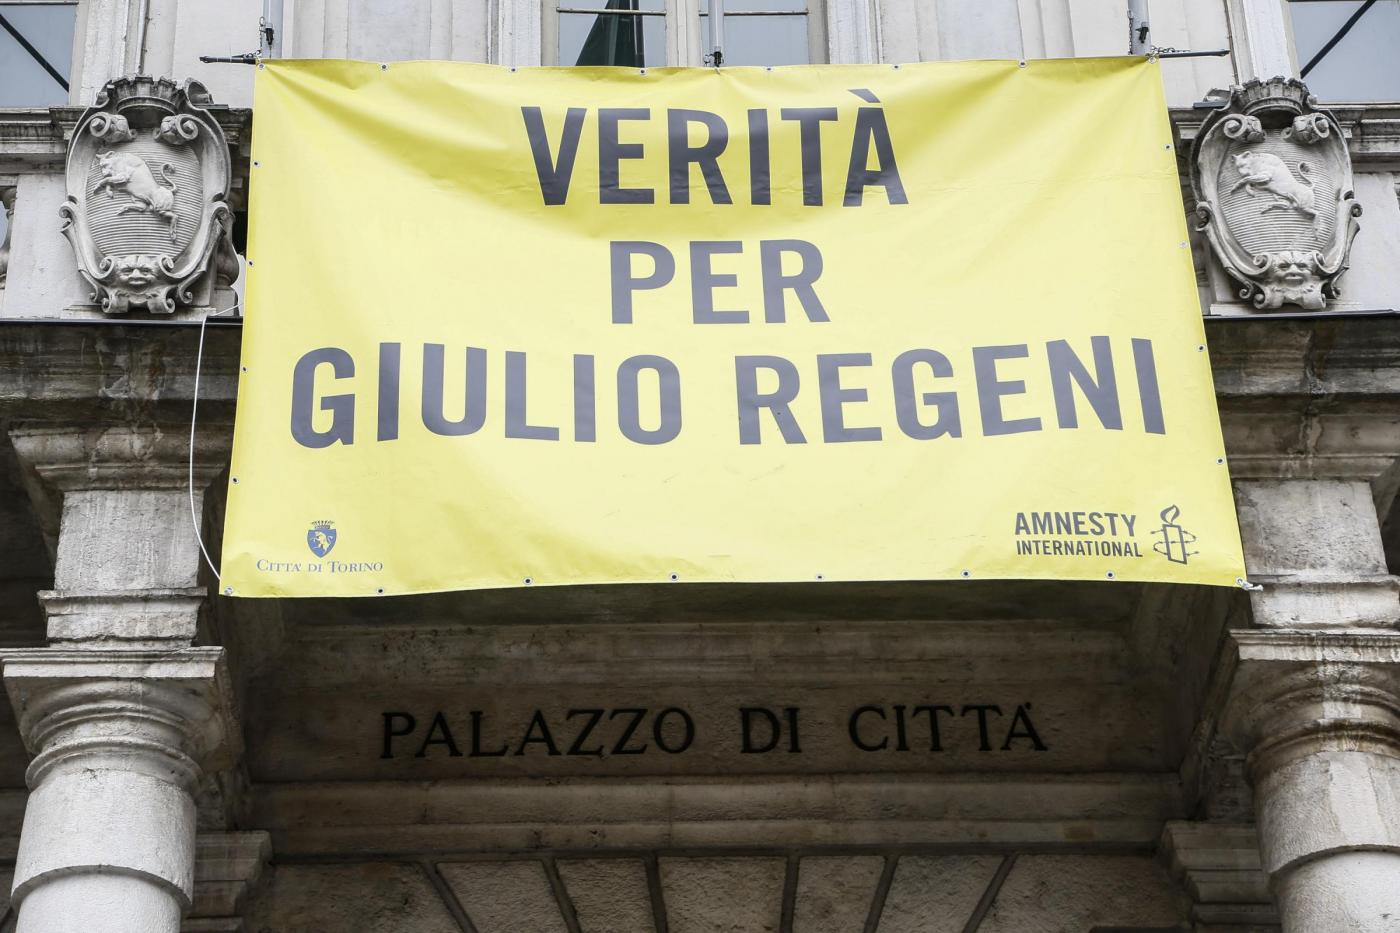 Giulio Regeni, Amnesty International: 'Troppe incertezze e silenzi da parte dell'Italia'